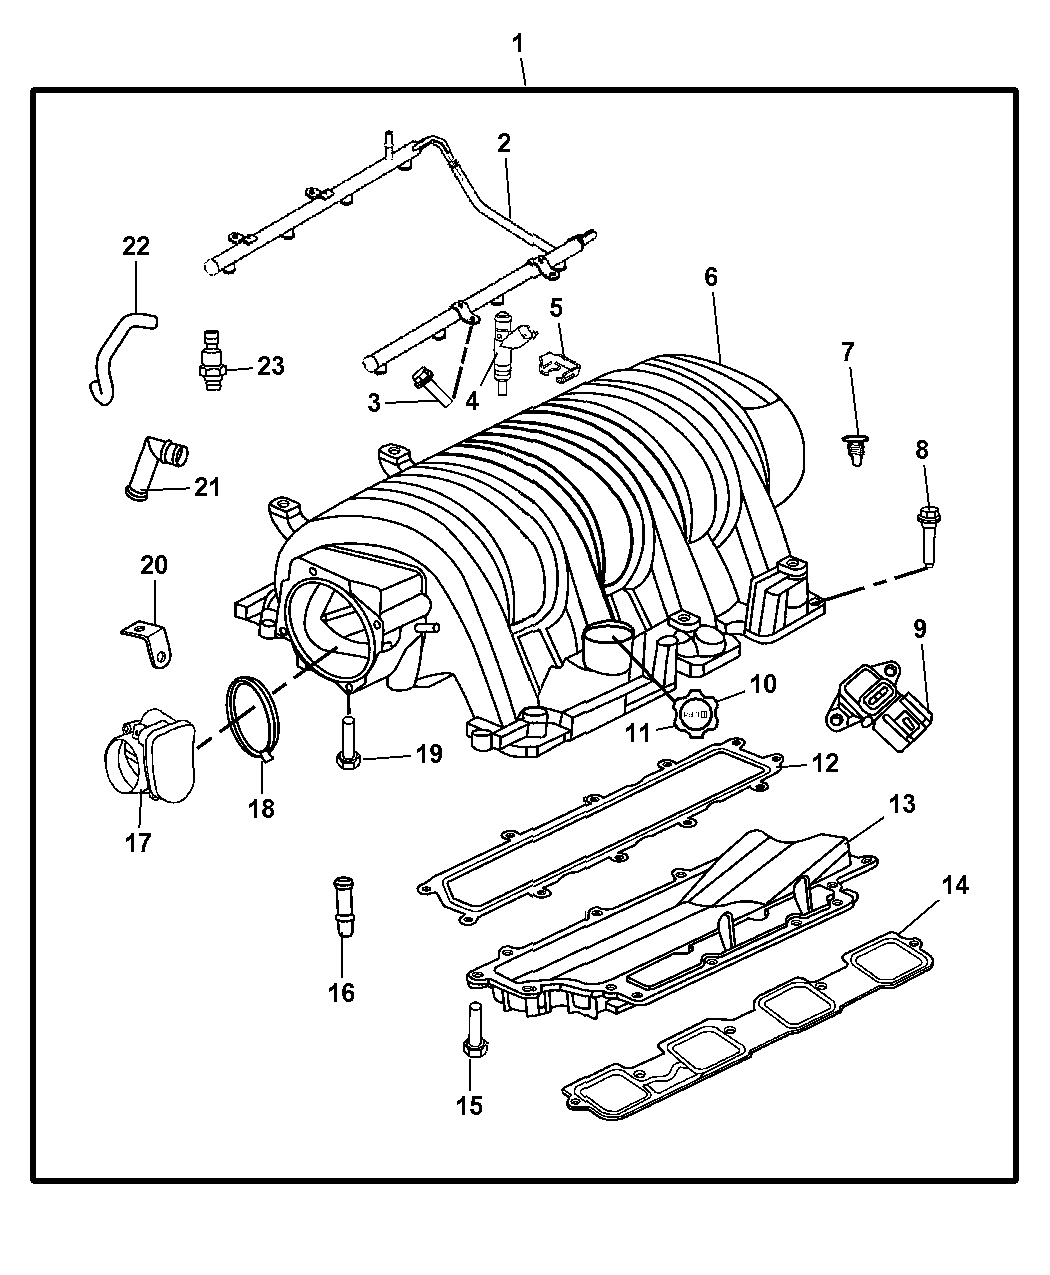 2006 dodge charger 5 7 hemi engine diagram